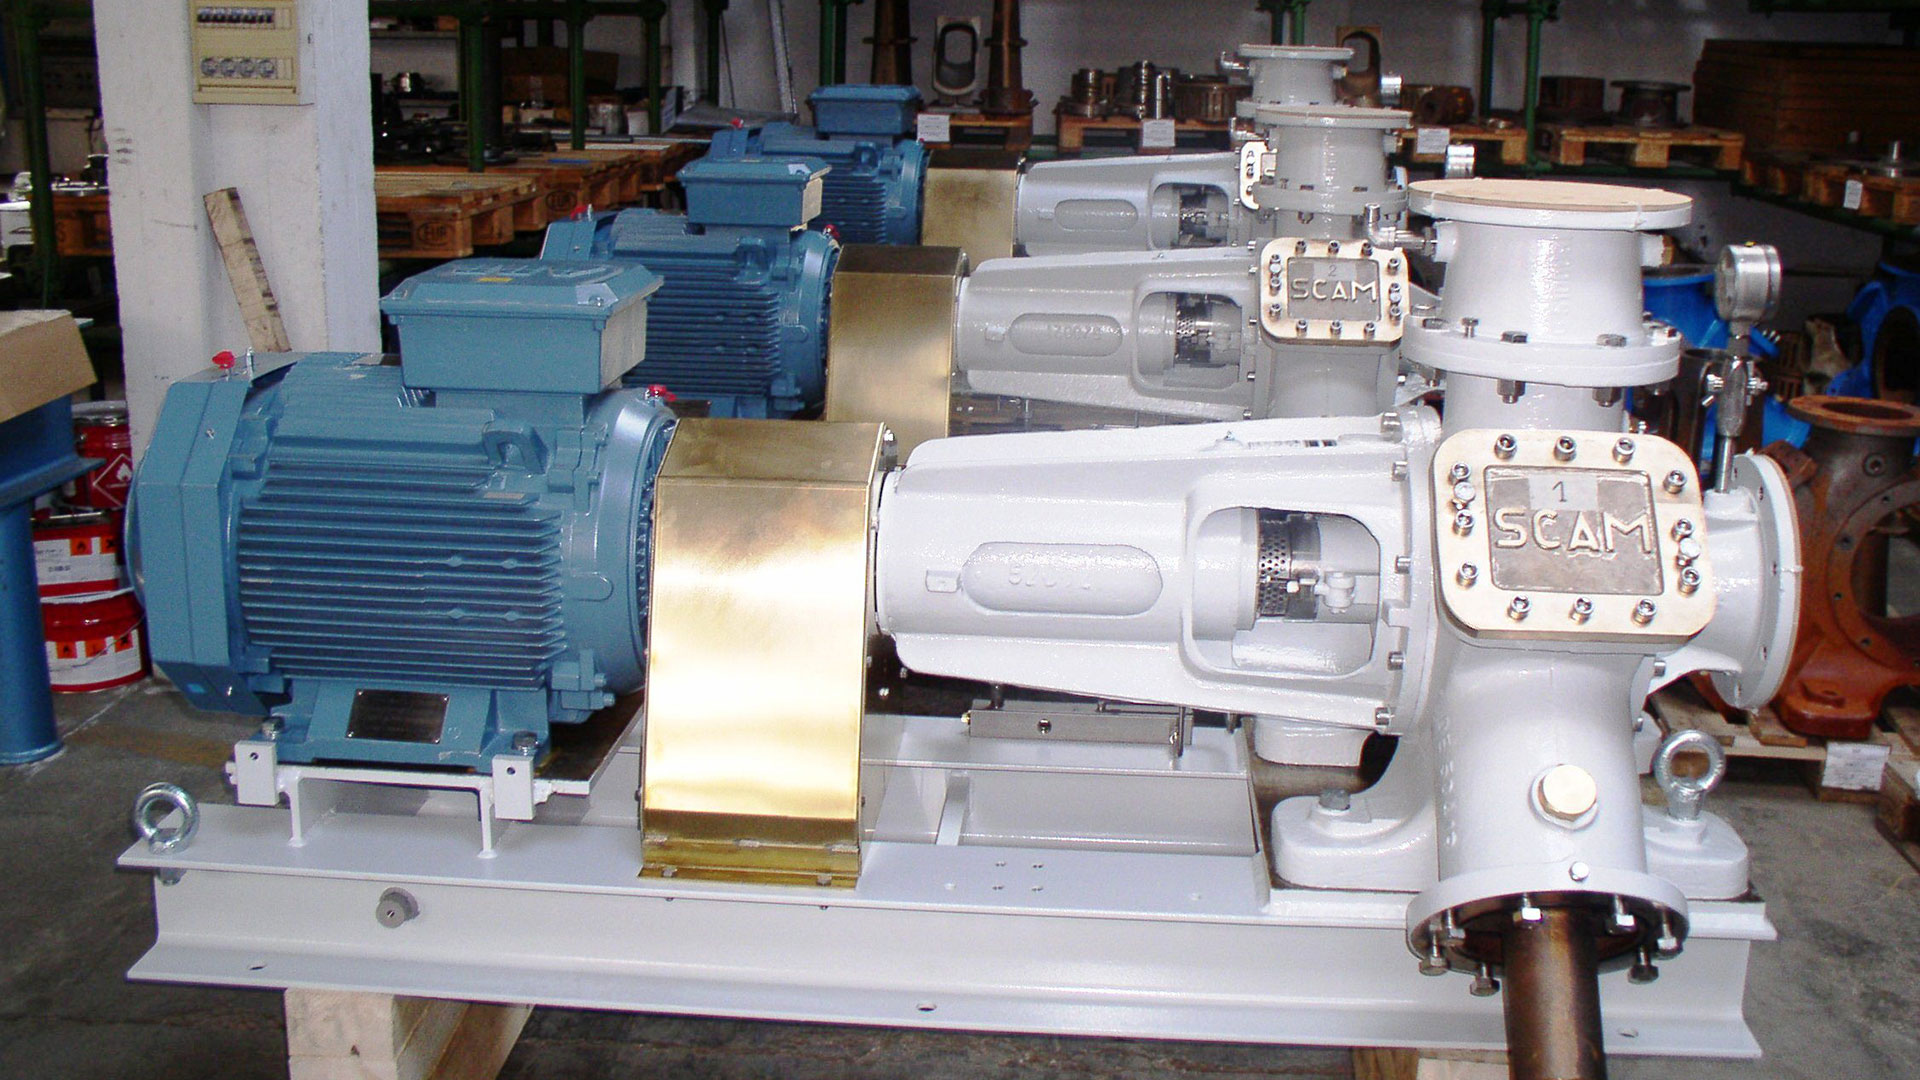 Vacuum Pumps 12 by SCAM Technology